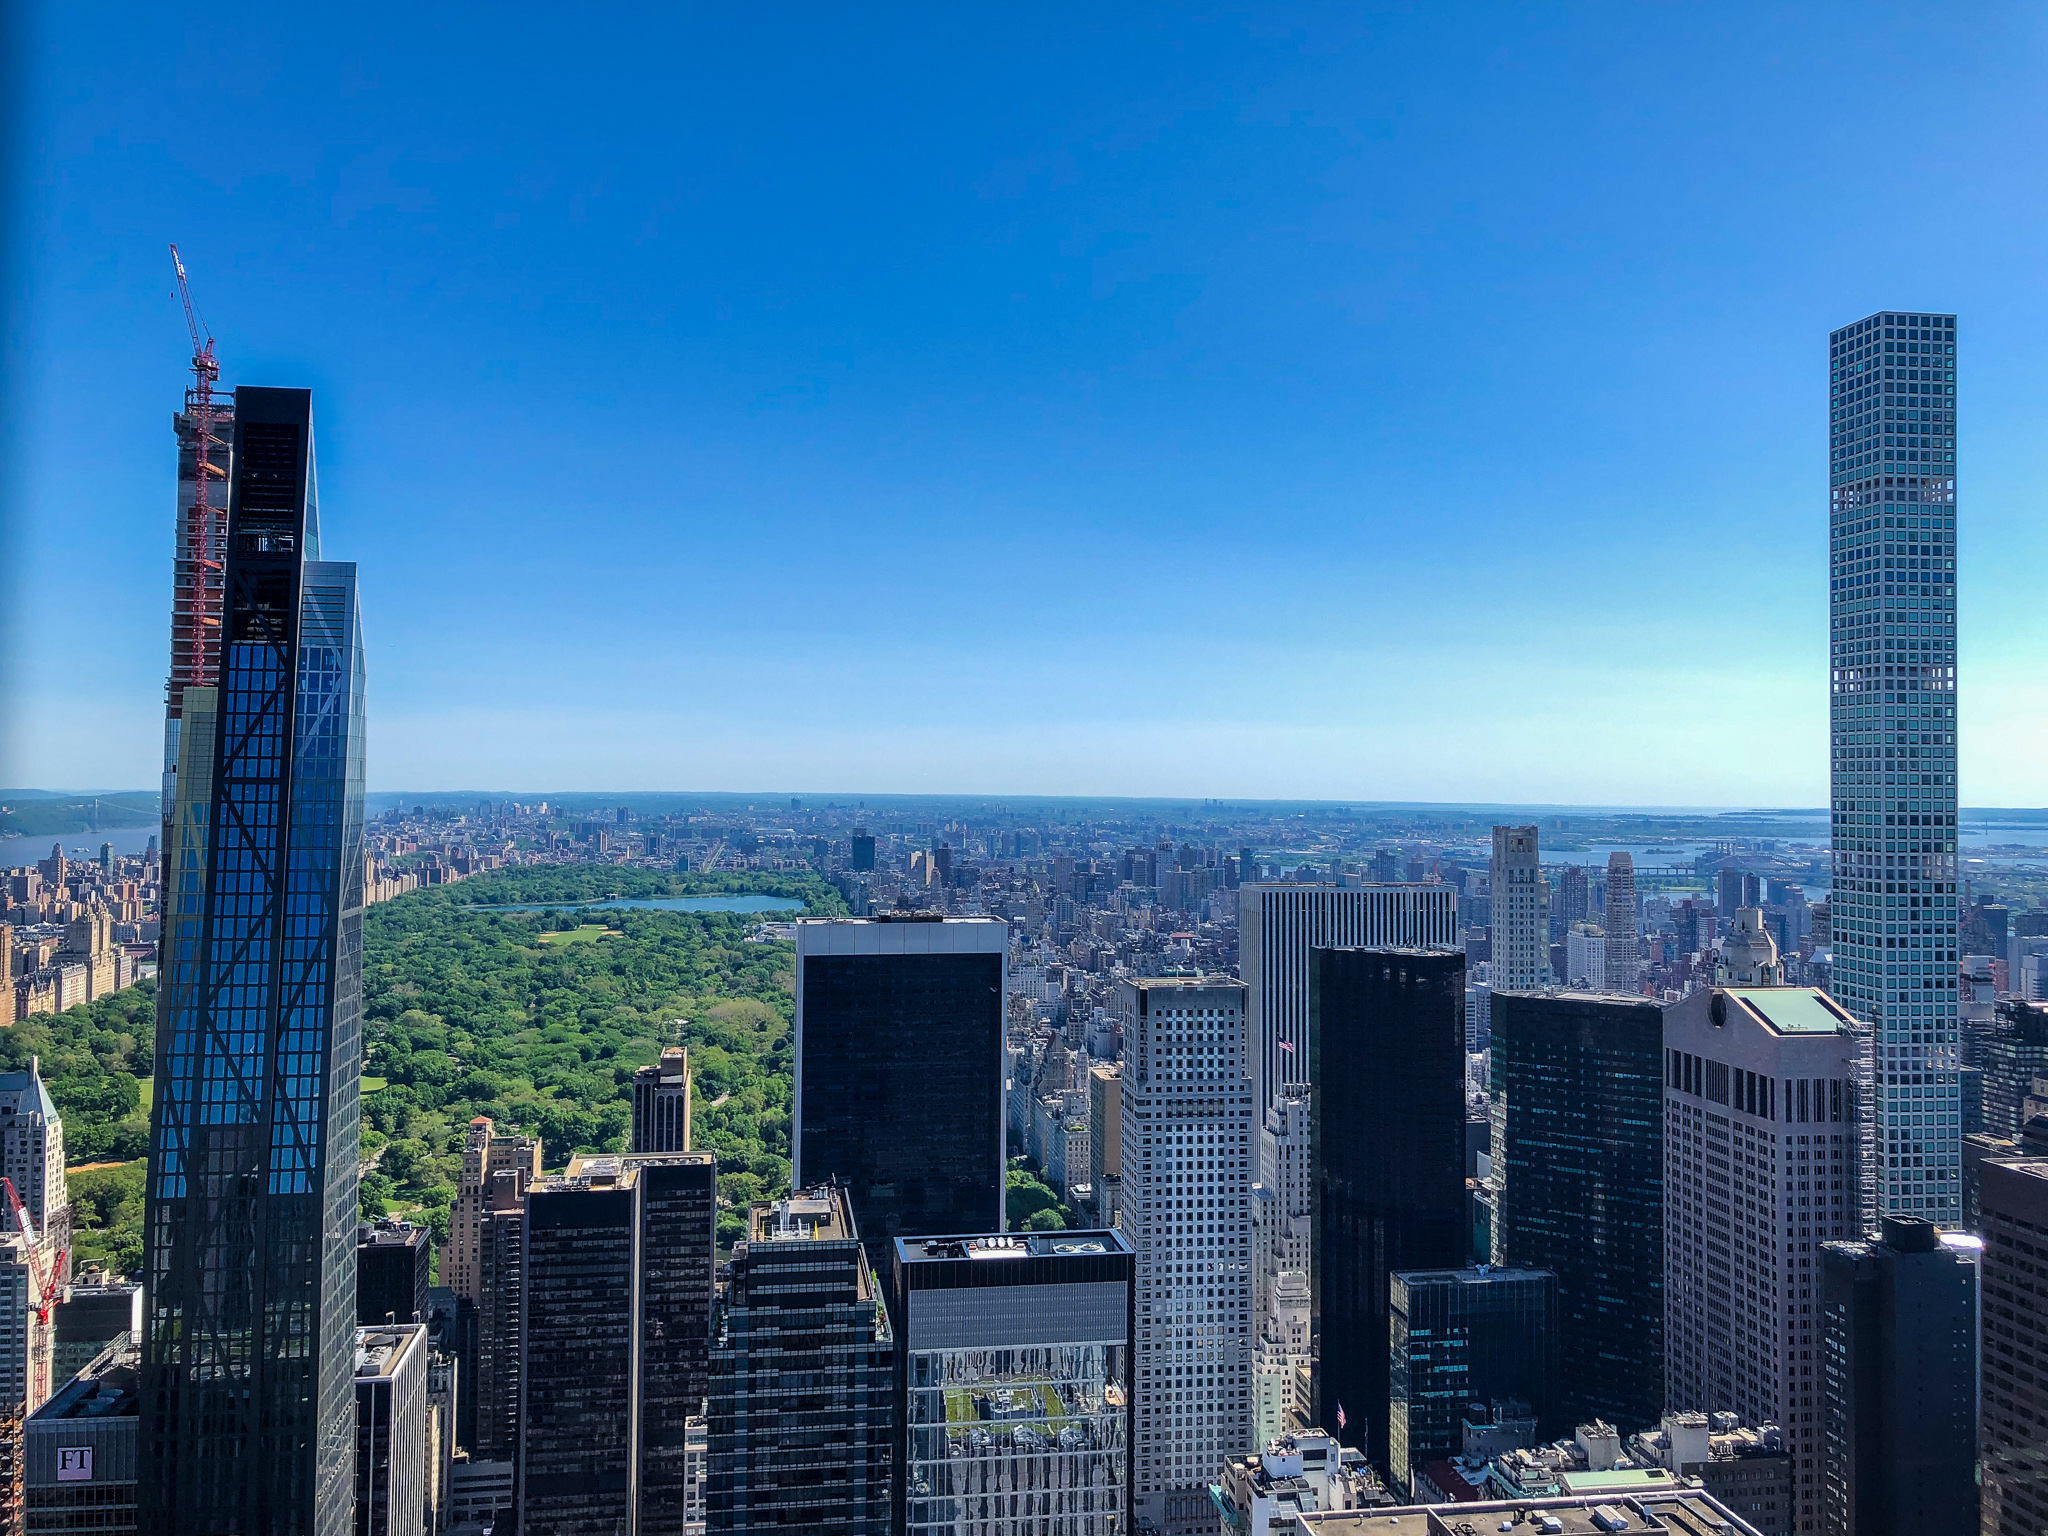 buy a citypass and go to the top of the rock after visiting the met